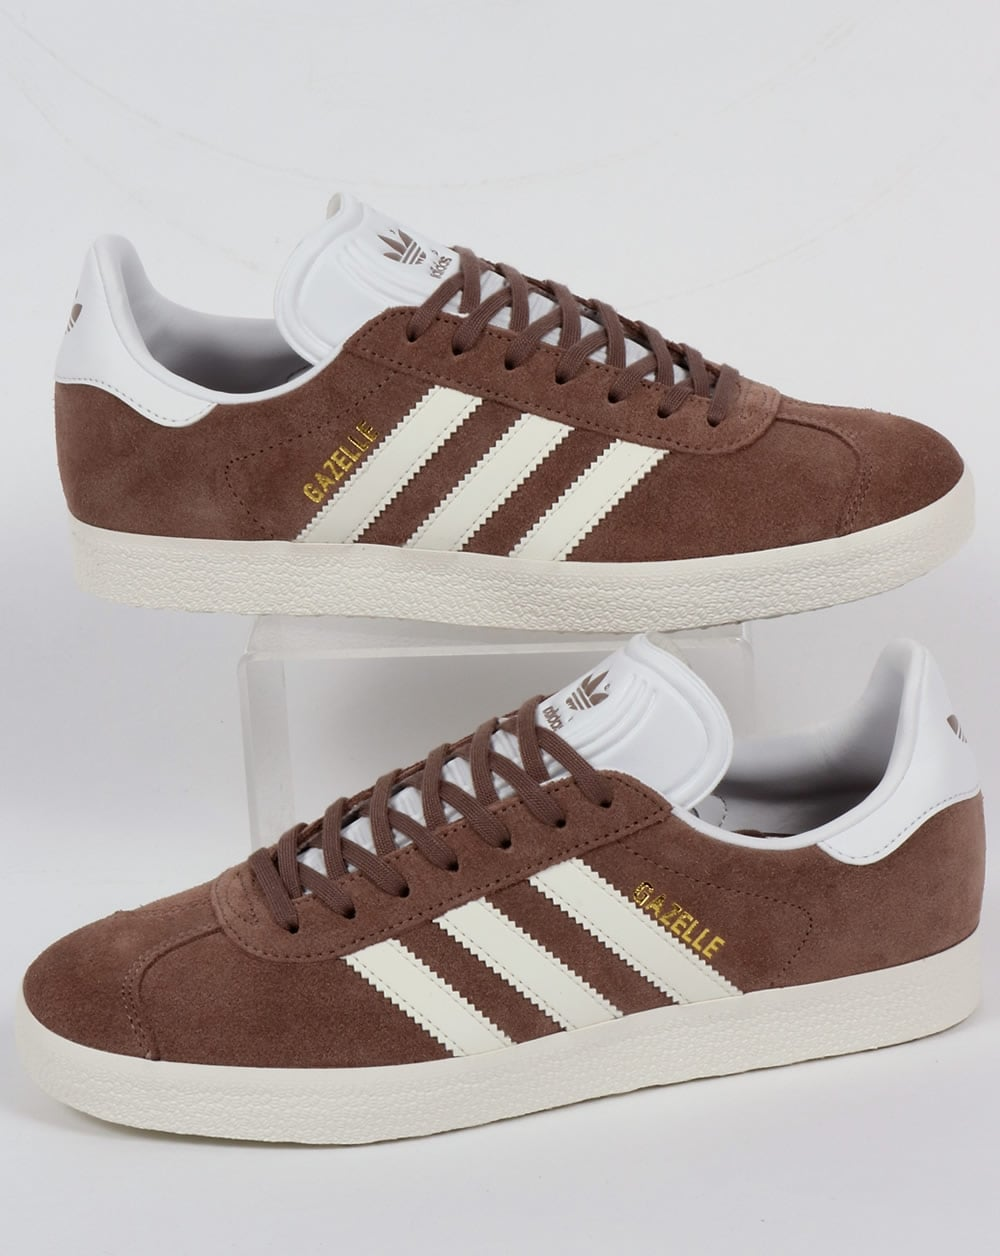 taille 40 e4690 23386 Adidas Gazelle Trainers Soft Brown/Off White